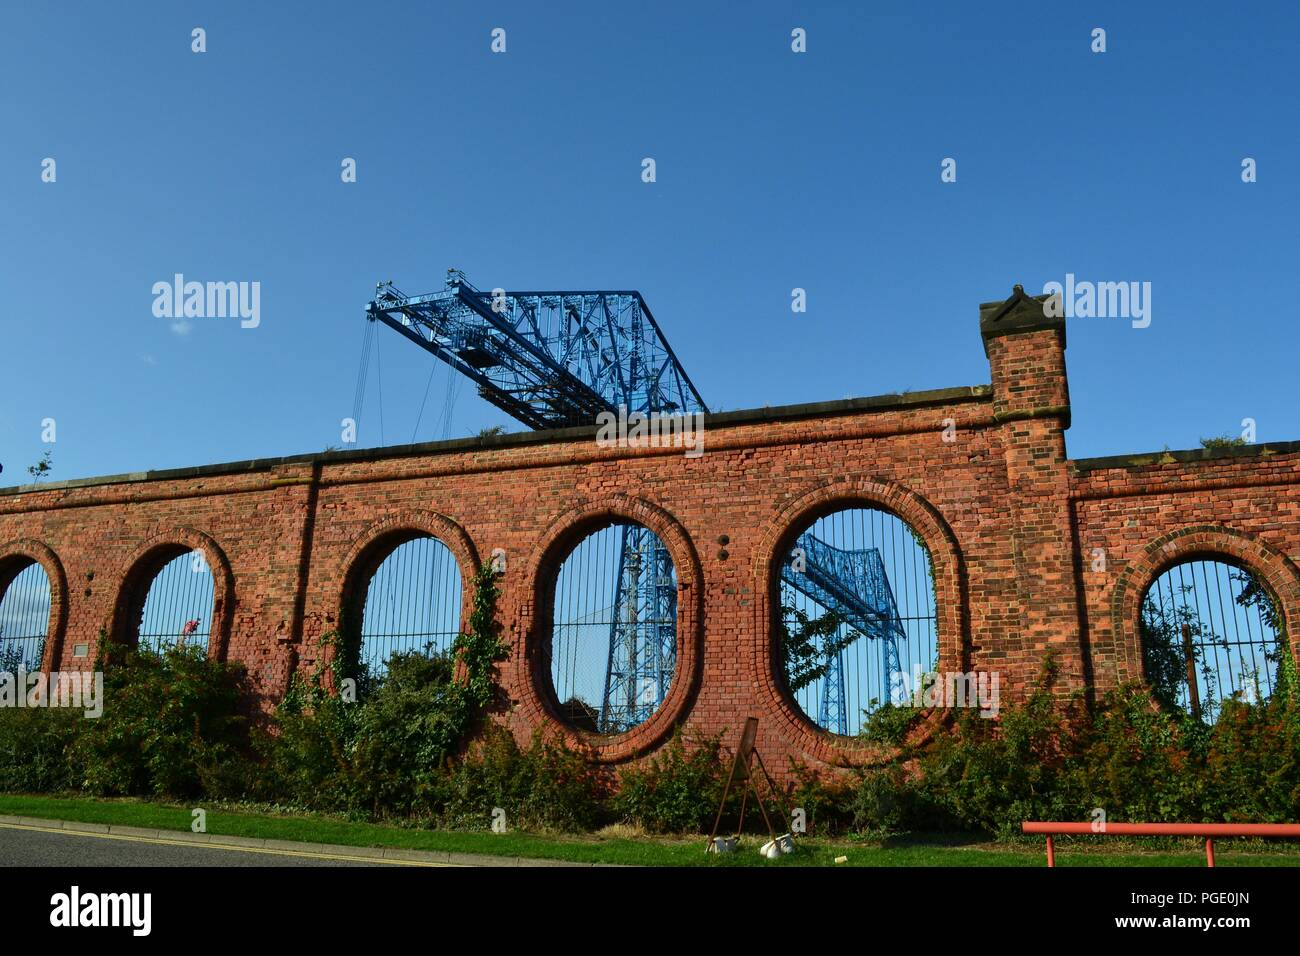 Stunning images of the famous Transporter Bridge, Middlesbrough, pictured through the windows of the historic old Salt works. - Stock Image